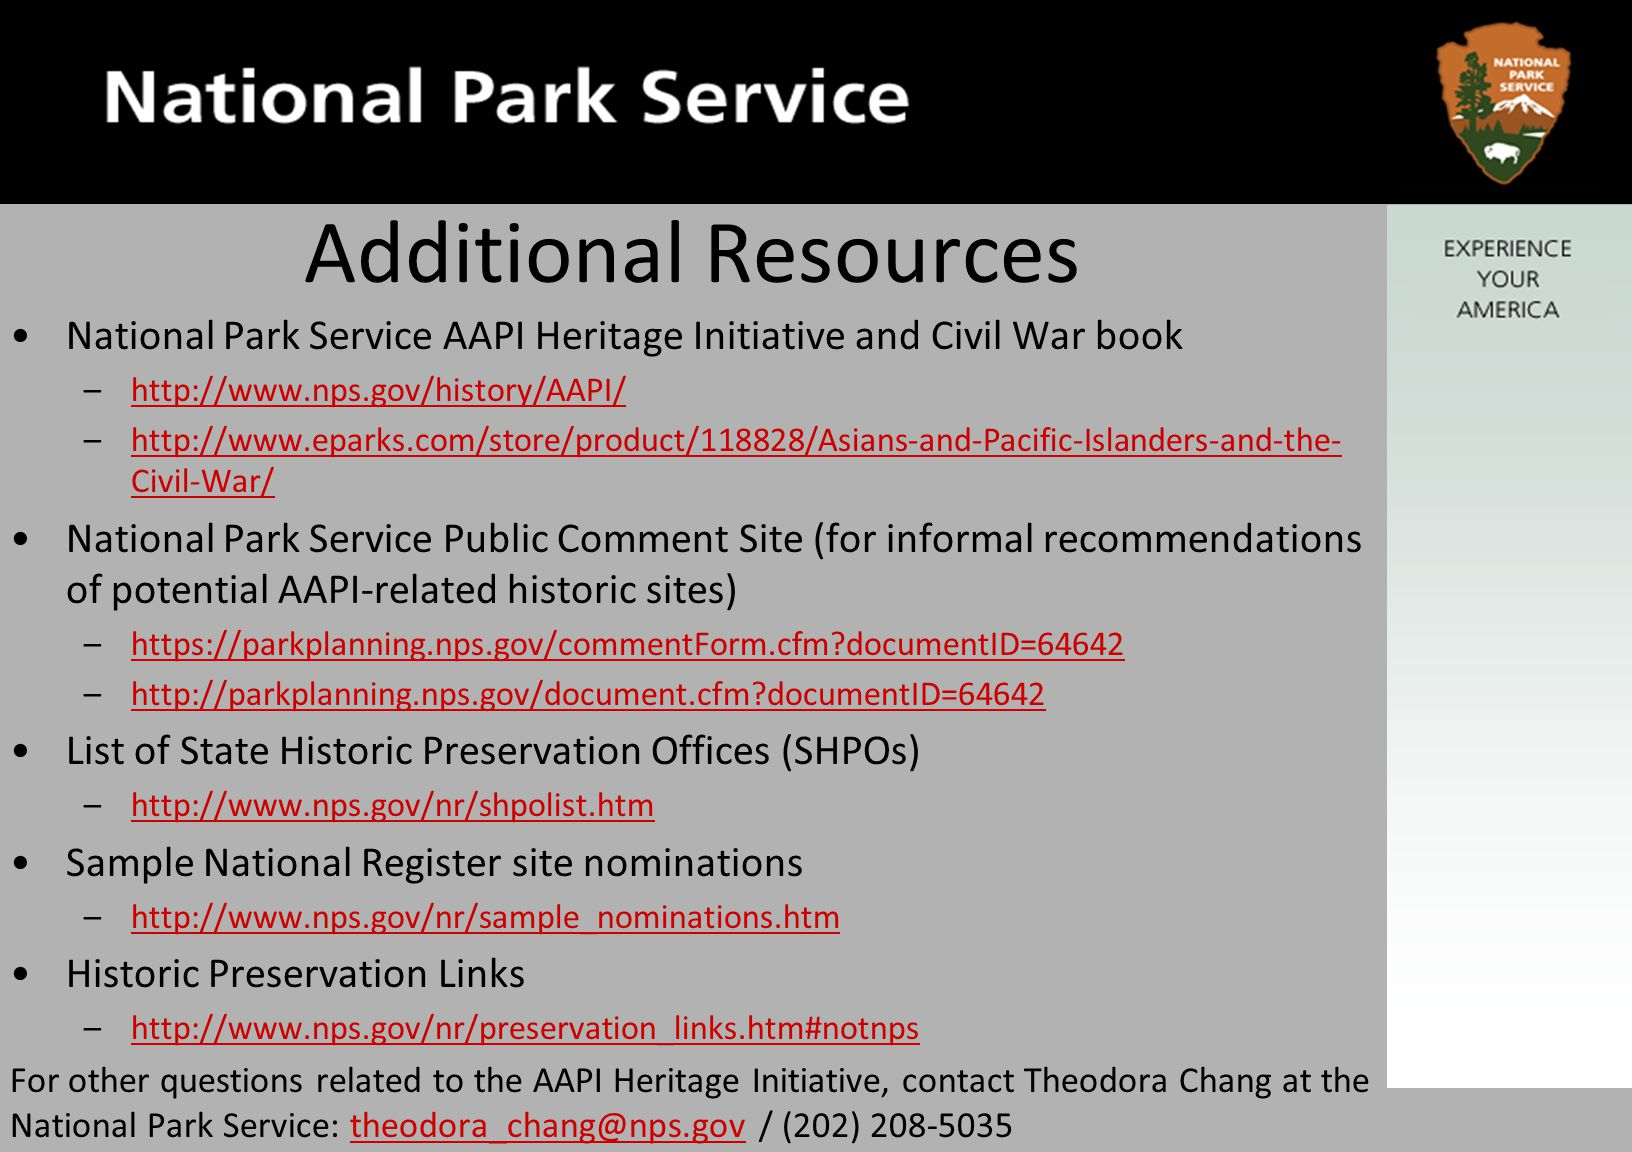 Additional Resources National Park Service AAPI Heritage Initiative and Civil War book –http://www.nps.gov/history/AAPI/http://www.nps.gov/history/AAPI/ –http://www.eparks.com/store/product/118828/Asians-and-Pacific-Islanders-and-the- Civil-War/http://www.eparks.com/store/product/118828/Asians-and-Pacific-Islanders-and-the- Civil-War/ National Park Service Public Comment Site (for informal recommendations of potential AAPI-related historic sites) –https://parkplanning.nps.gov/commentForm.cfm documentID=64642https://parkplanning.nps.gov/commentForm.cfm documentID=64642 –http://parkplanning.nps.gov/document.cfm documentID=64642http://parkplanning.nps.gov/document.cfm documentID=64642 List of State Historic Preservation Offices (SHPOs) –http://www.nps.gov/nr/shpolist.htmhttp://www.nps.gov/nr/shpolist.htm Sample National Register site nominations –http://www.nps.gov/nr/sample_nominations.htmhttp://www.nps.gov/nr/sample_nominations.htm Historic Preservation Links –http://www.nps.gov/nr/preservation_links.htm#notnpshttp://www.nps.gov/nr/preservation_links.htm#notnps For other questions related to the AAPI Heritage Initiative, contact Theodora Chang at the National Park Service: theodora_chang@nps.gov / (202) 208-5035theodora_chang@nps.gov